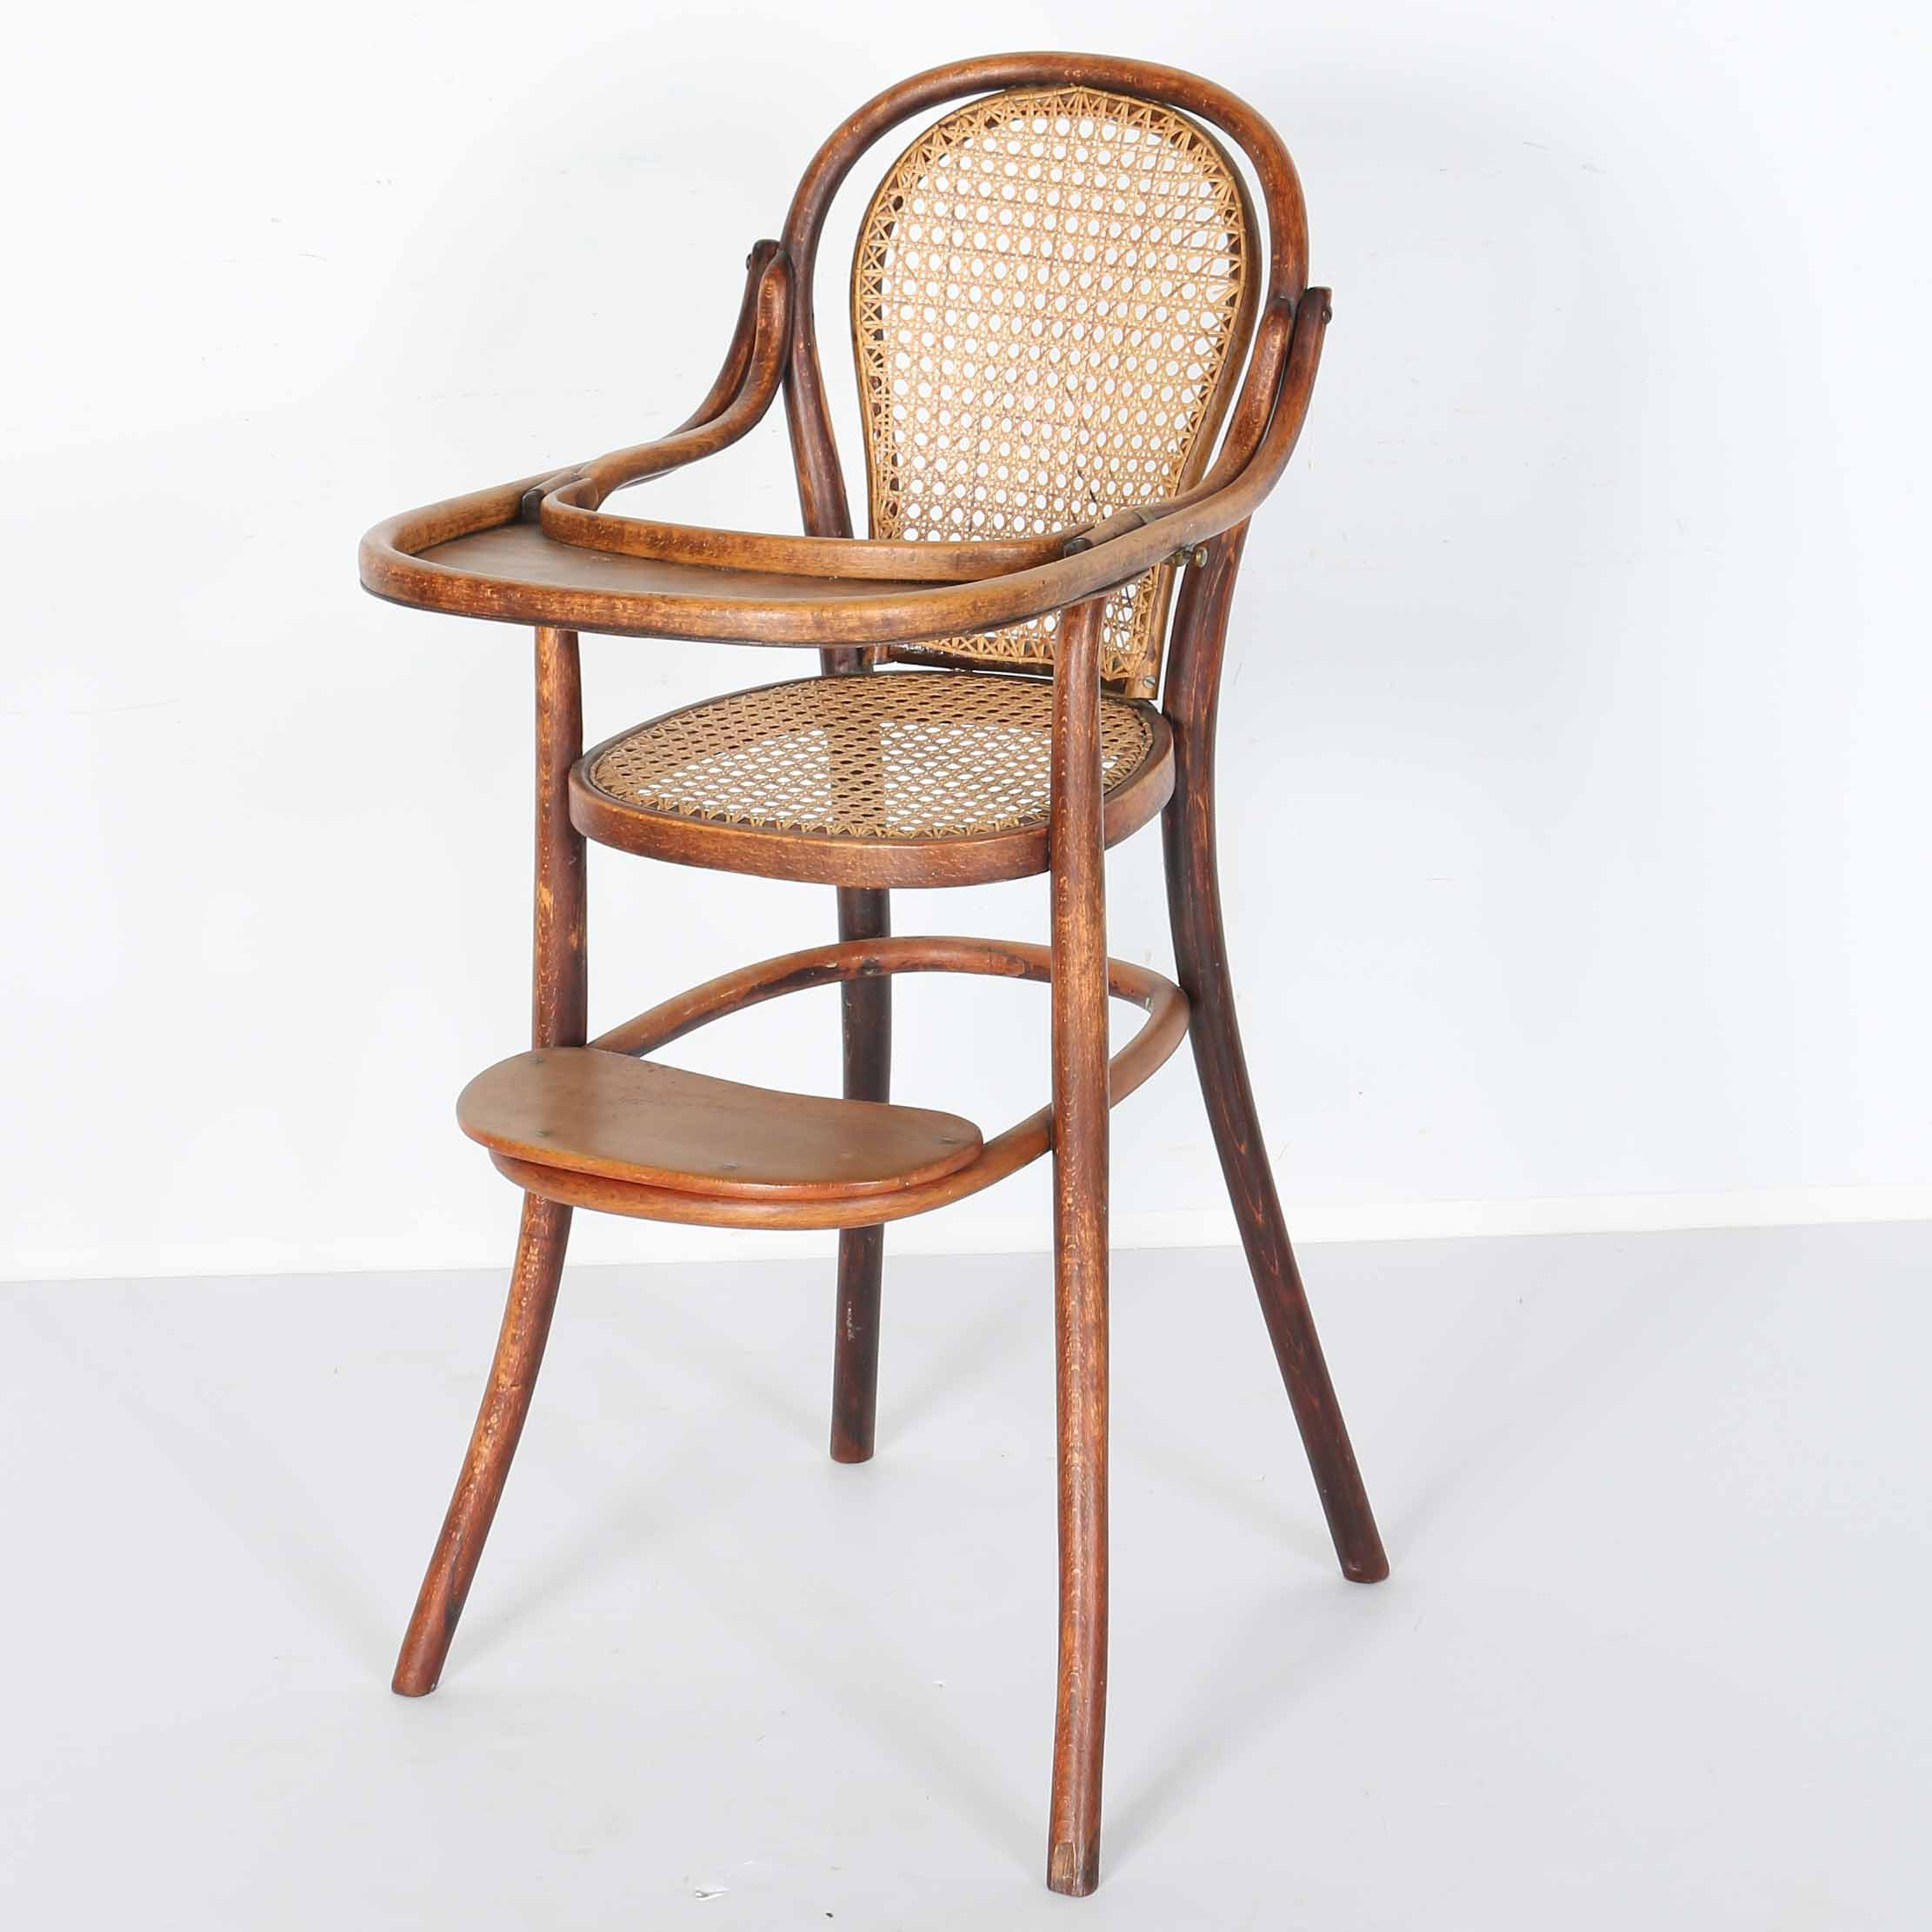 Late 19th To Early 20th Century Bentwood High Chair ...